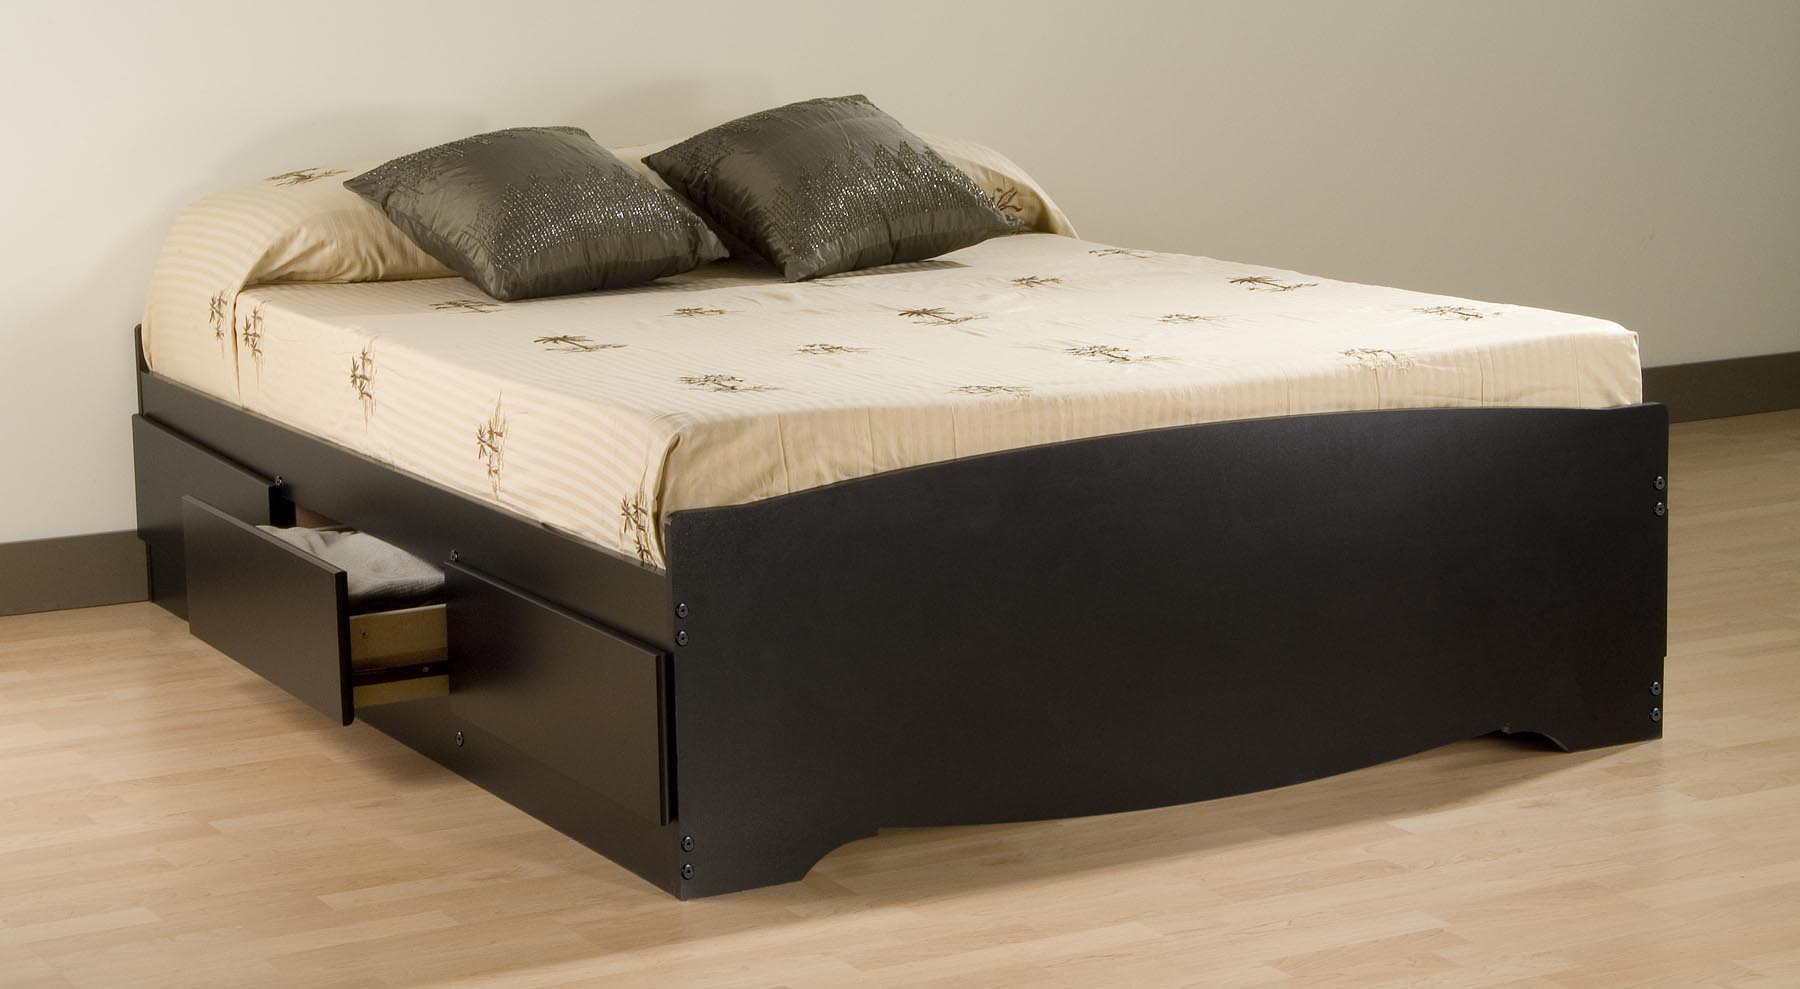 Admirable queen size platform bed with black and laminate flooring